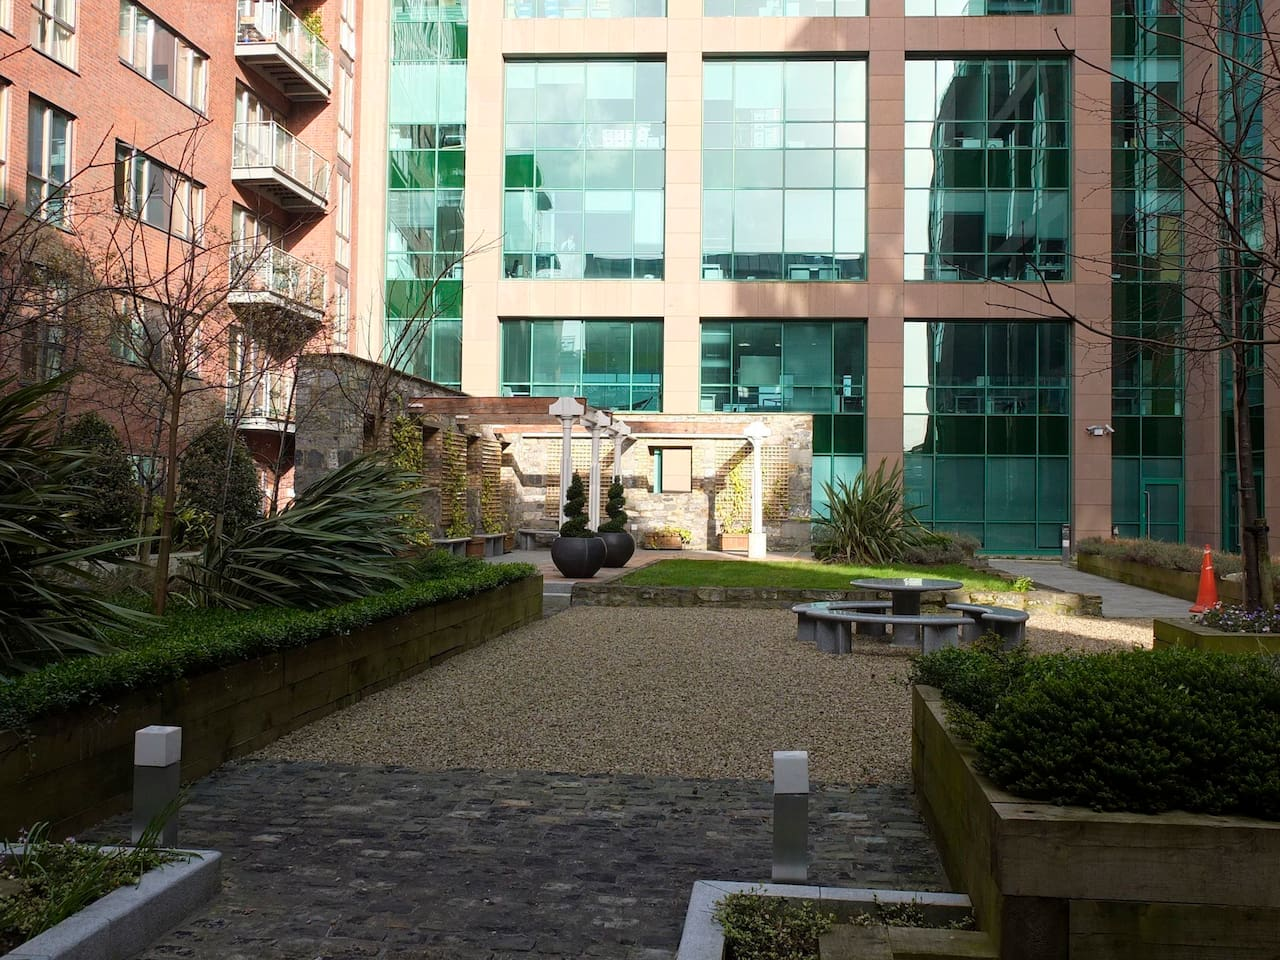 Courtyard in light - apartment building on the left, (SENSITIVE CONTENTS HIDDEN) offices on the right